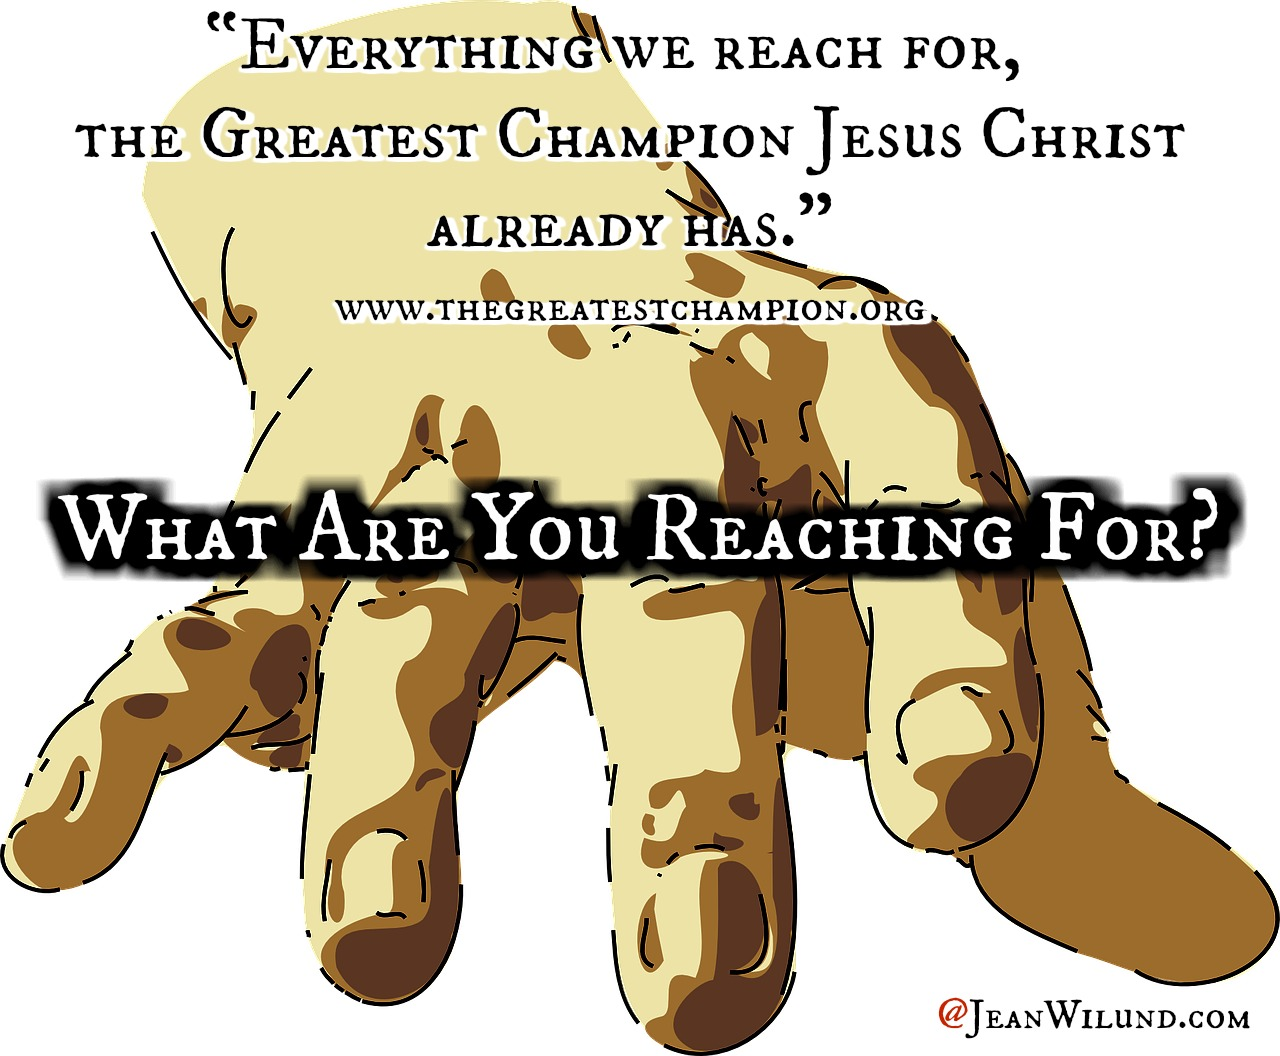 "What are you reaching for? Everything we reach for, the Greatest Champion Jesus Christ already has."" (www.thegreatestchampion.org) via www.JeanWilund.com"